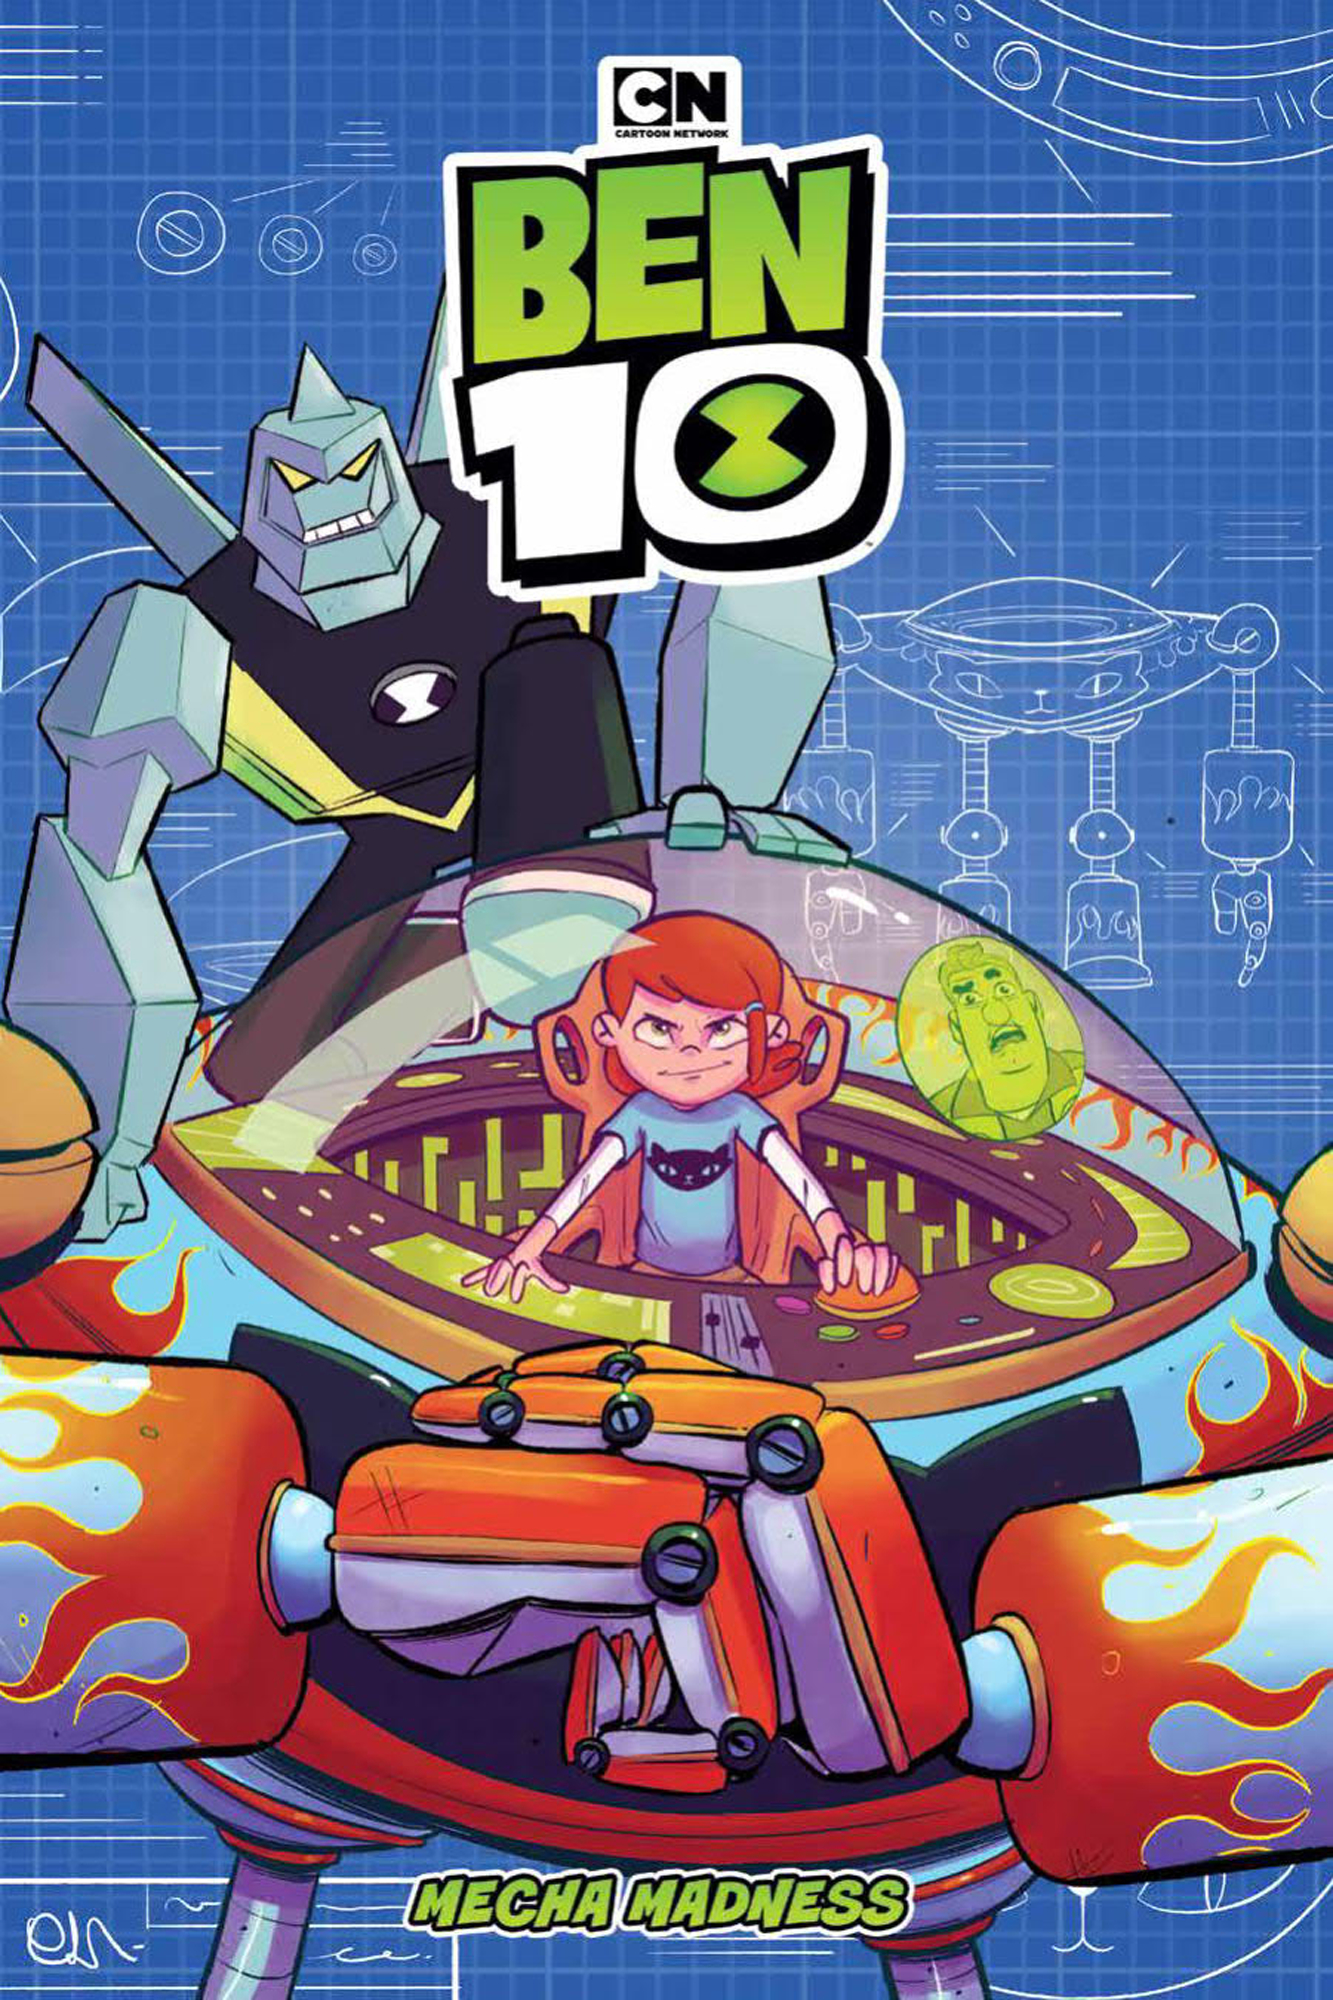 BEN 10 ORIGINAL GN MECHA MADNESS